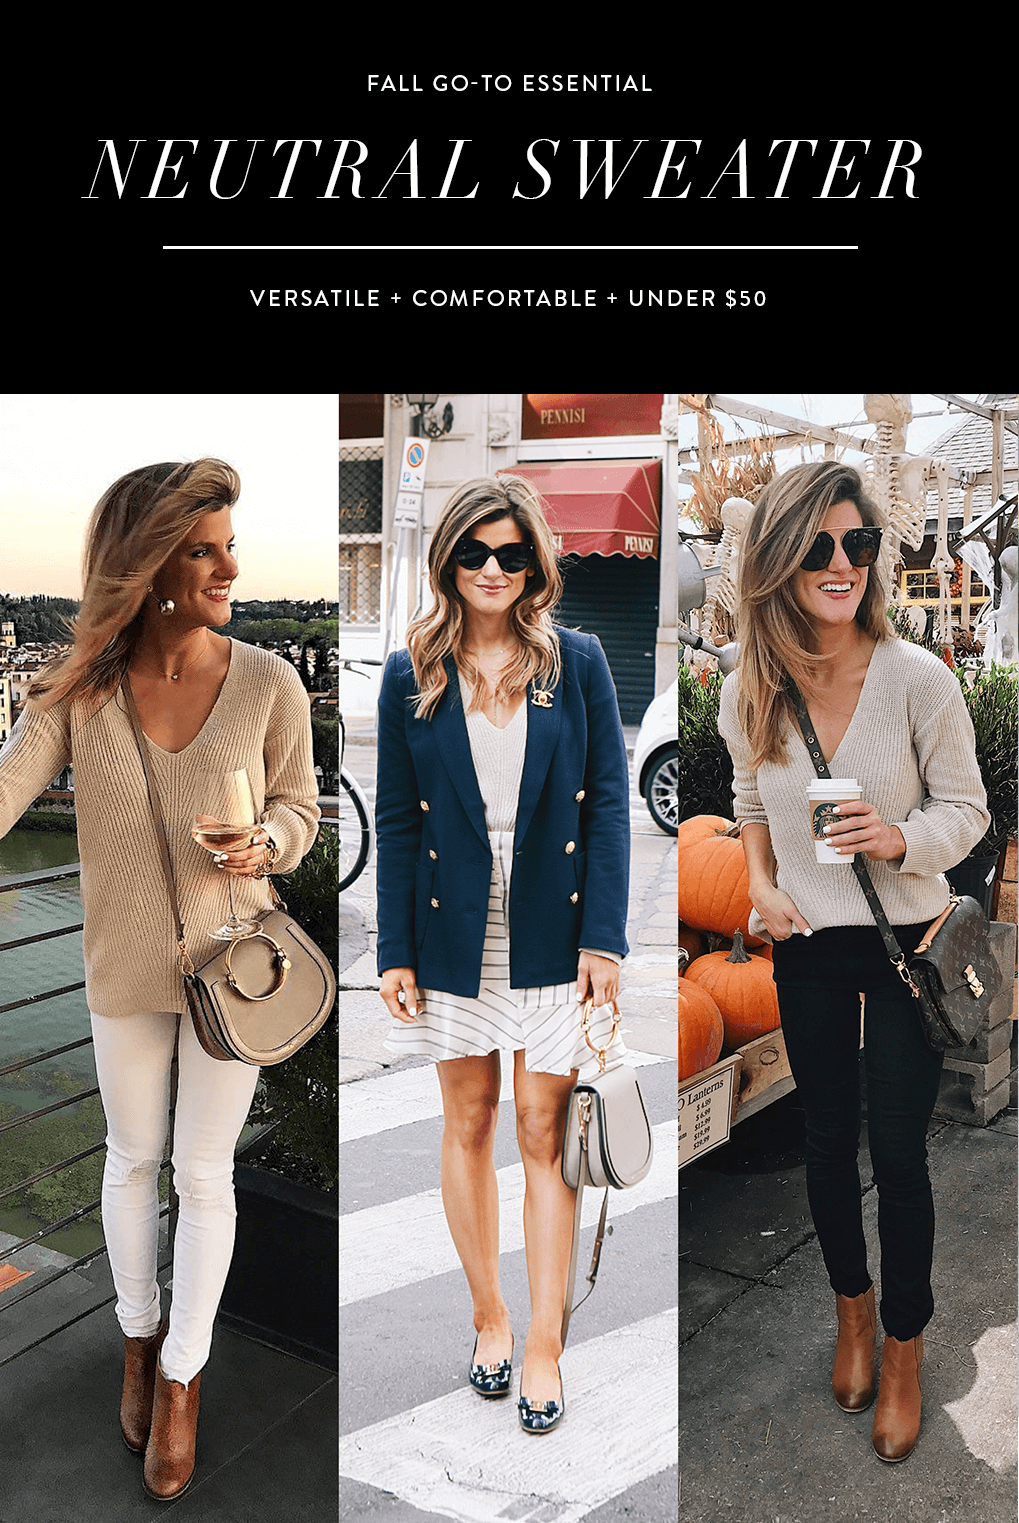 fall essential neutral sweater three outfit ideas with oatmeal sweater